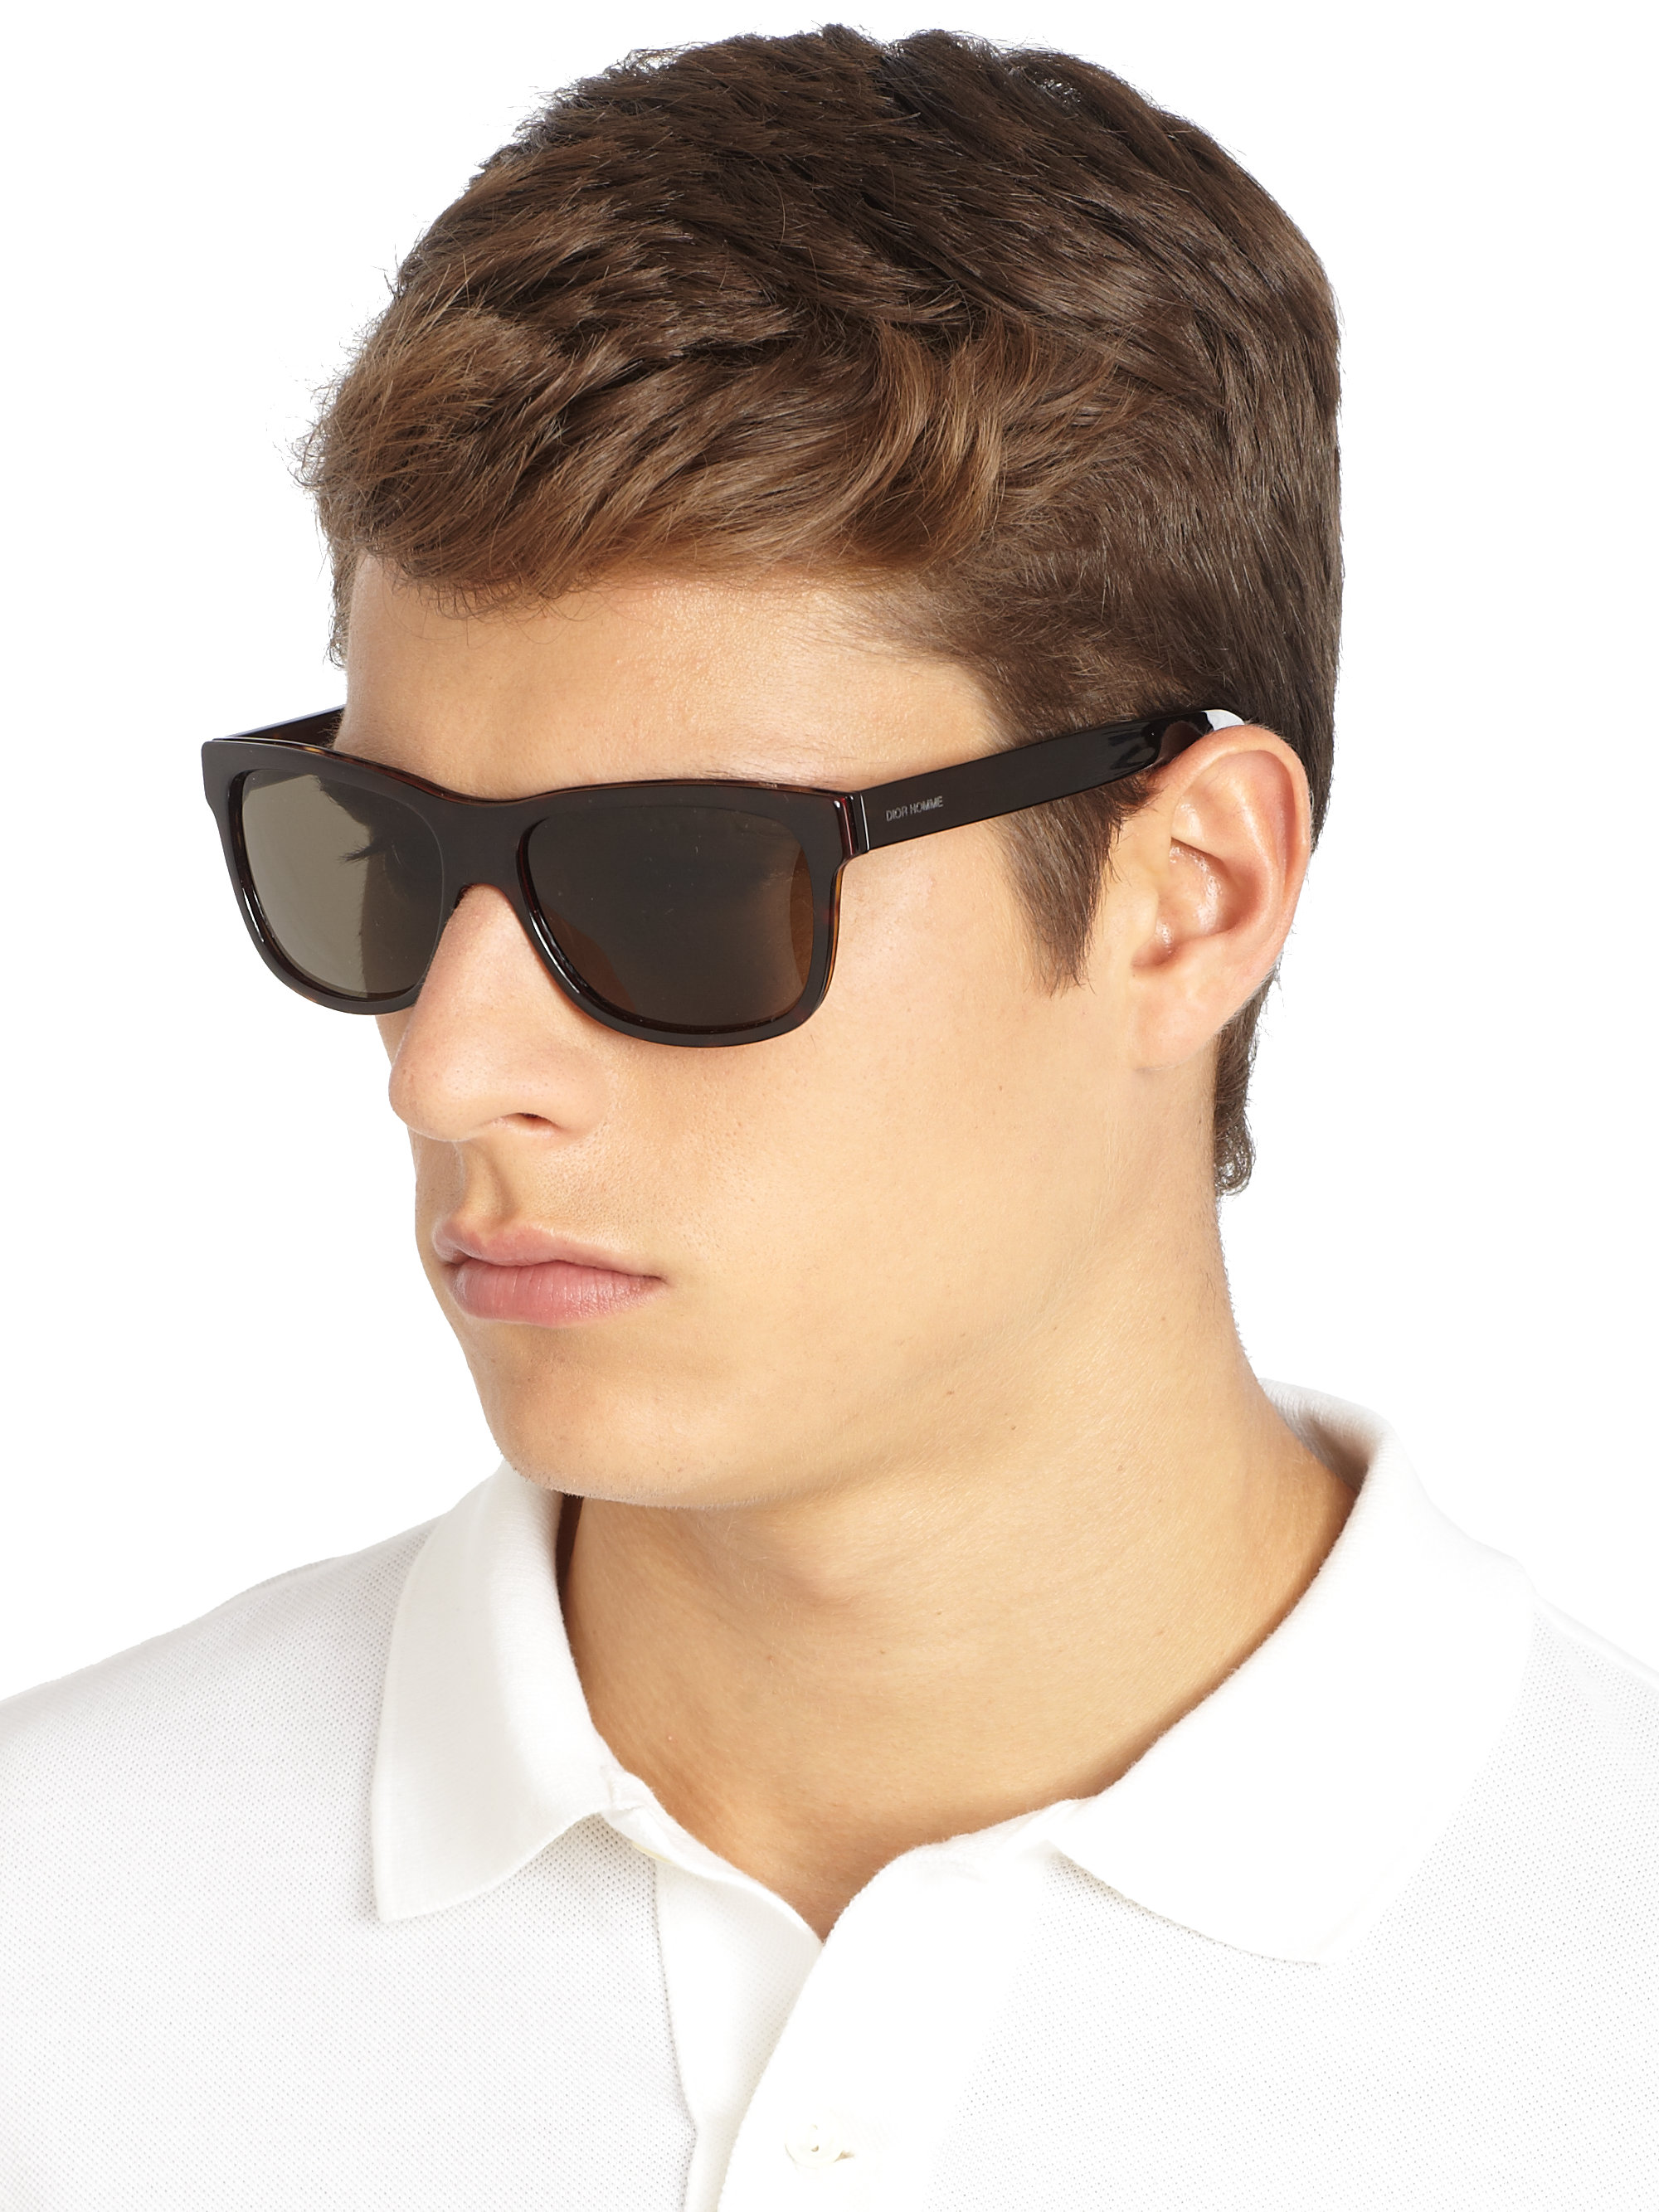 ccc9660bbbf Dior Homme Acetate Wayfarer Sunglasses in Black for Men - Lyst